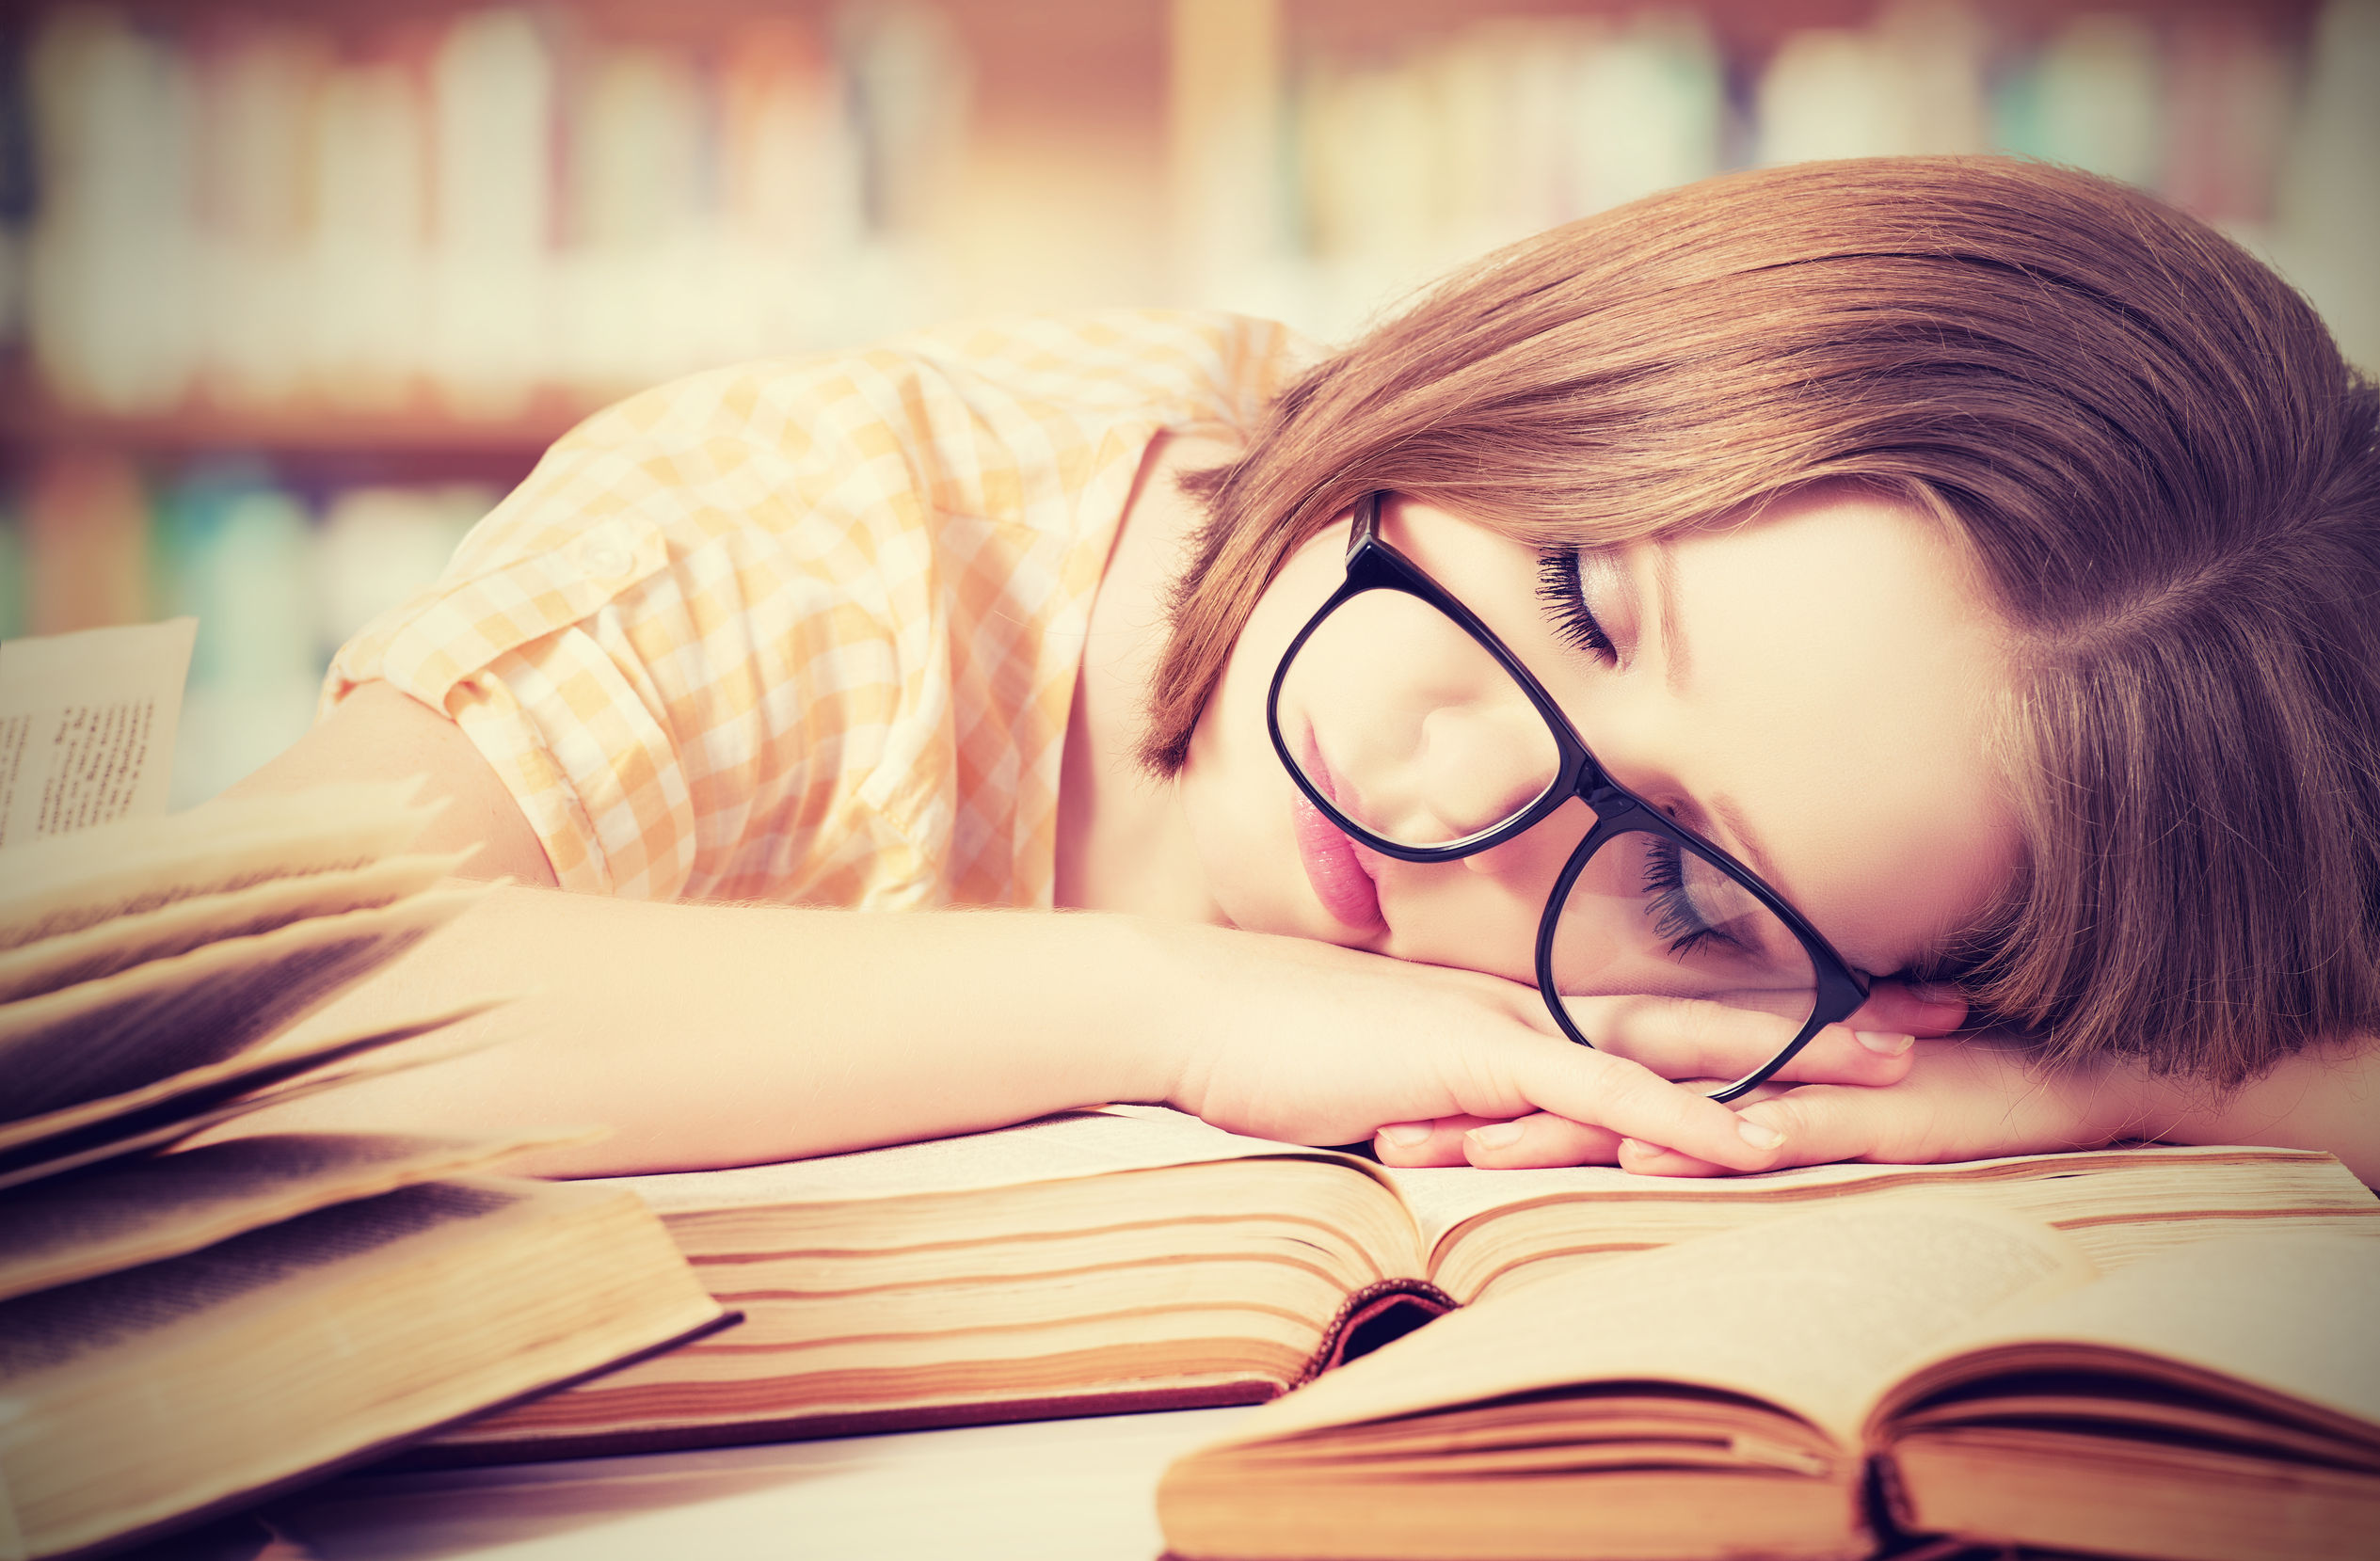 26519532 - tired student girl with glasses sleeping on the books in the library